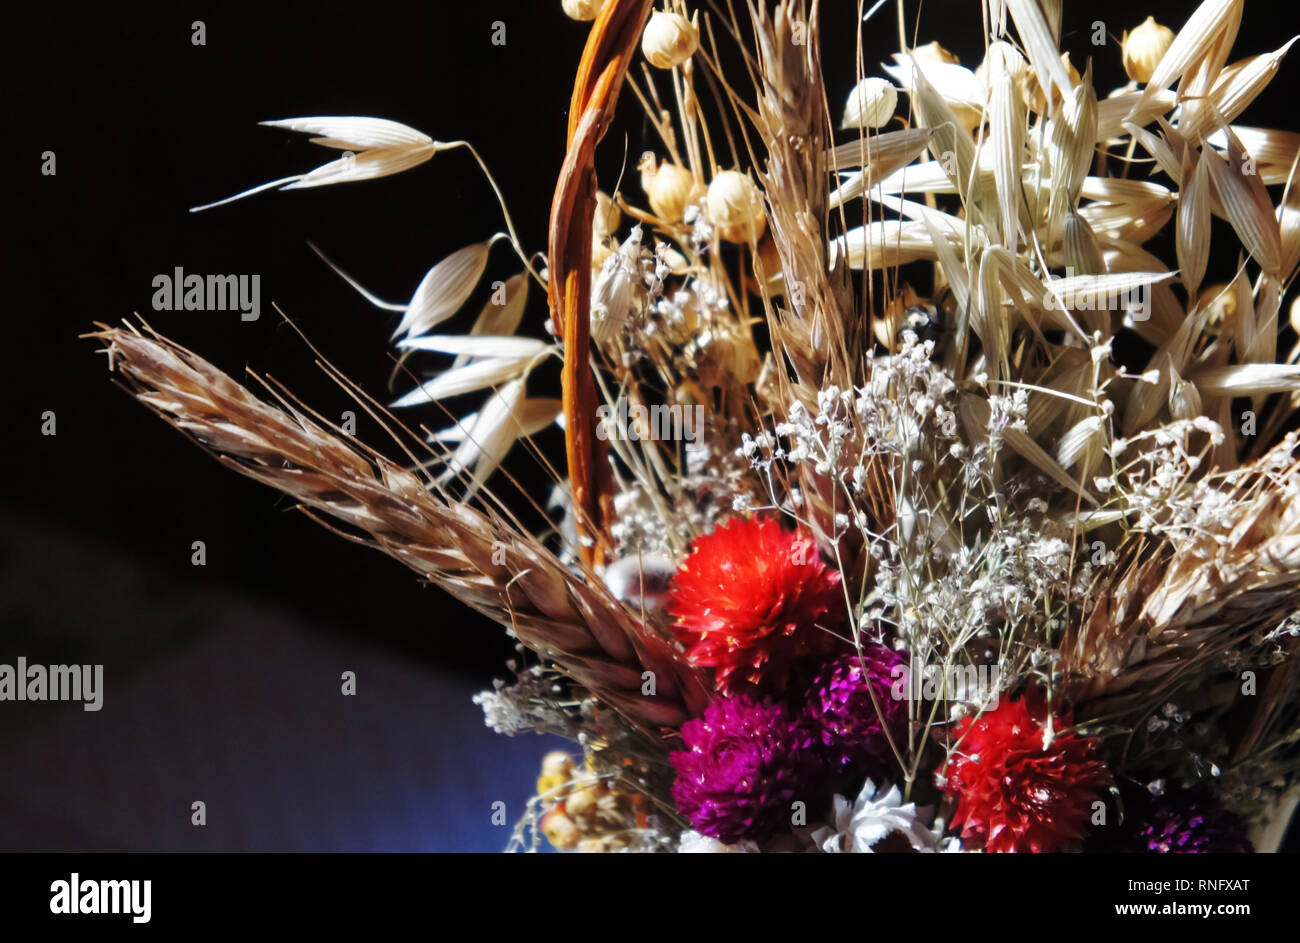 Bouquet Of Dried Flowers Dry Flowers Spring Flower Bouquet Photography Stock Photo Alamy